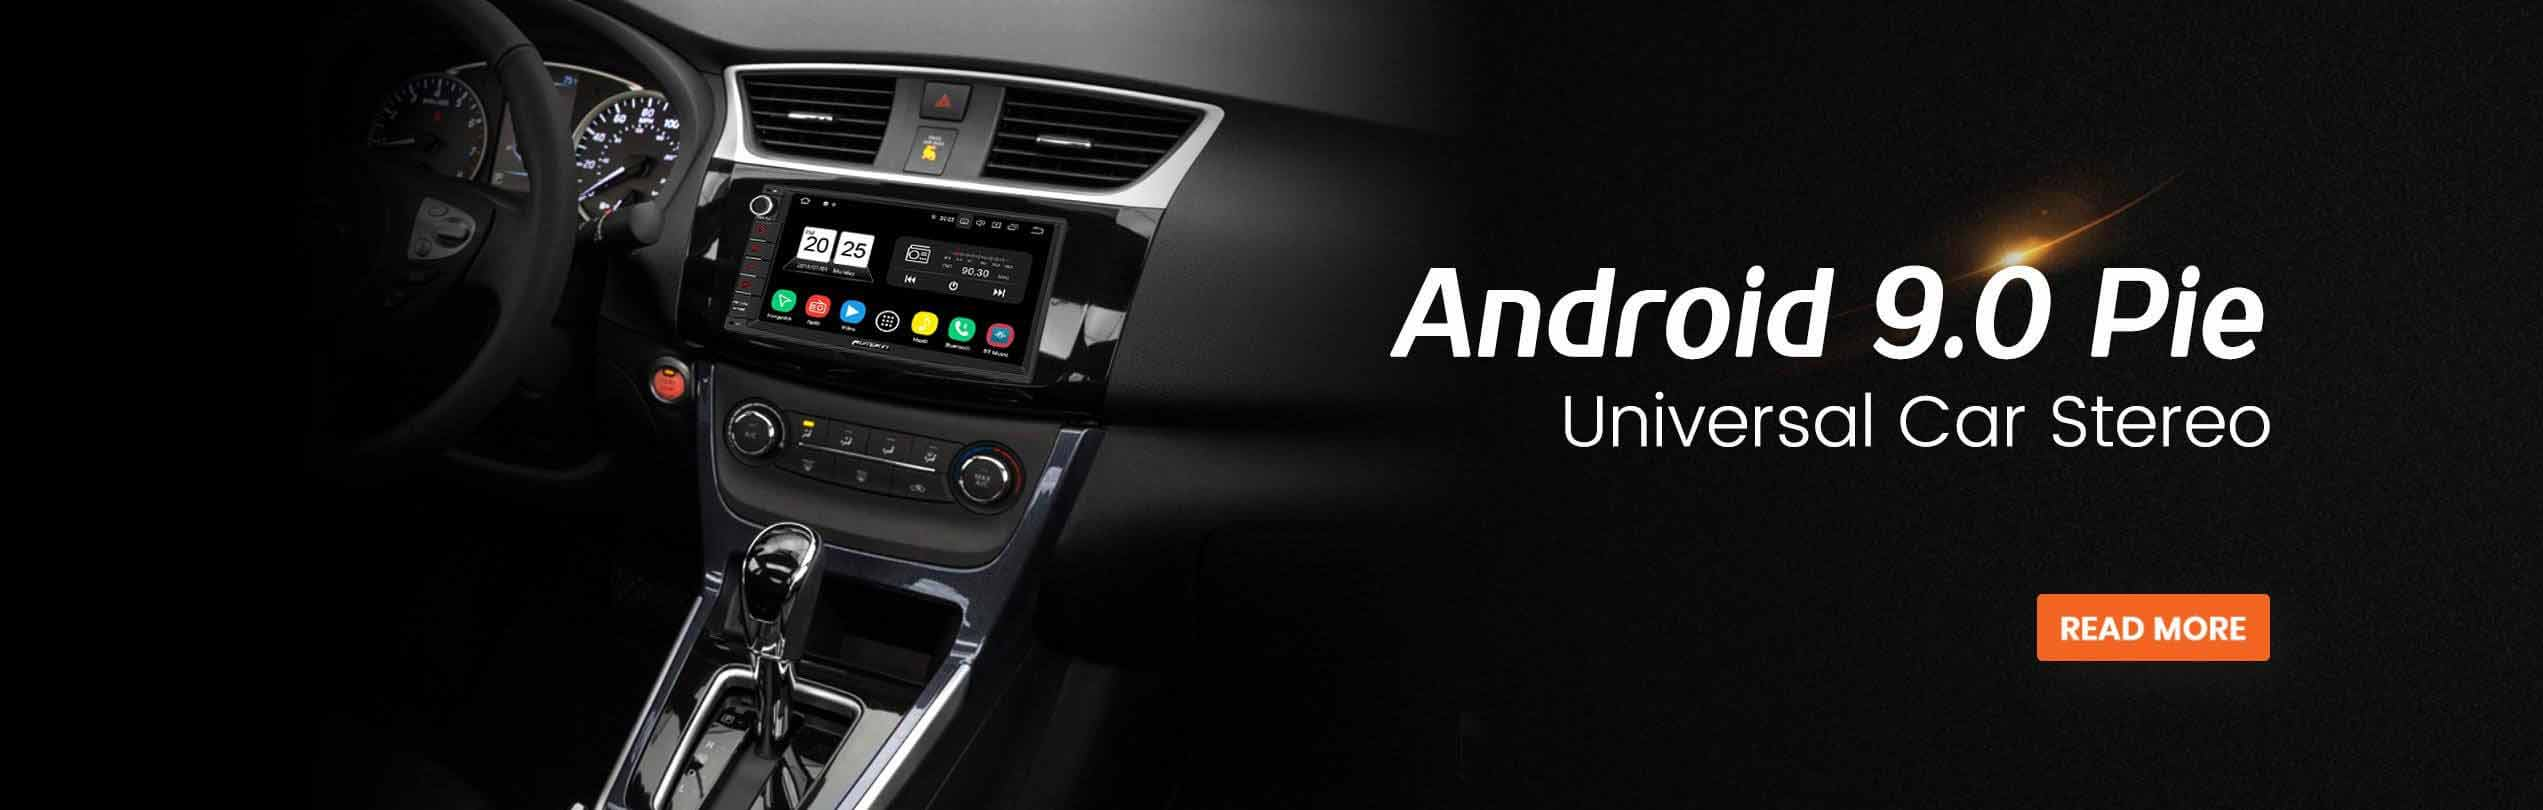 android 9.0 Pie car stereo